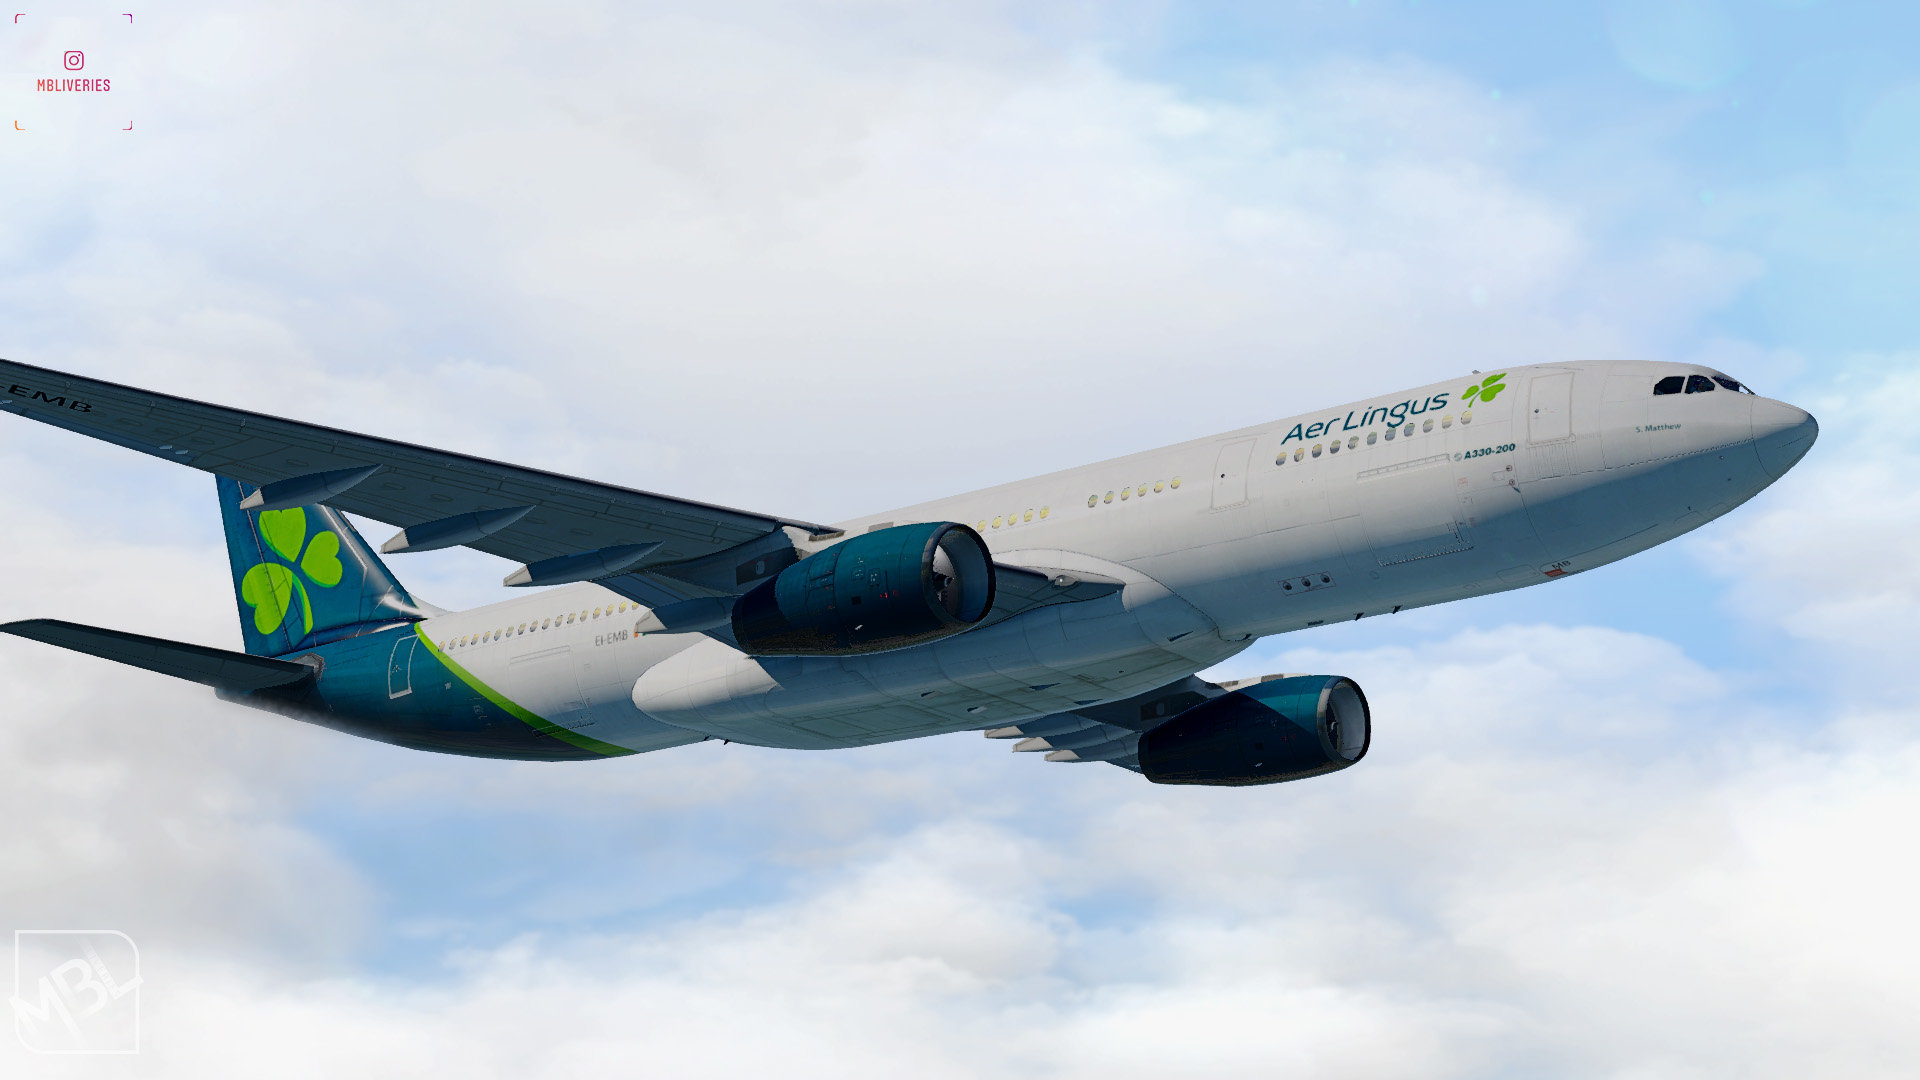 Aer Lingus (2019) - Airbus A330-200 JarDesign - Liveries - Threshold